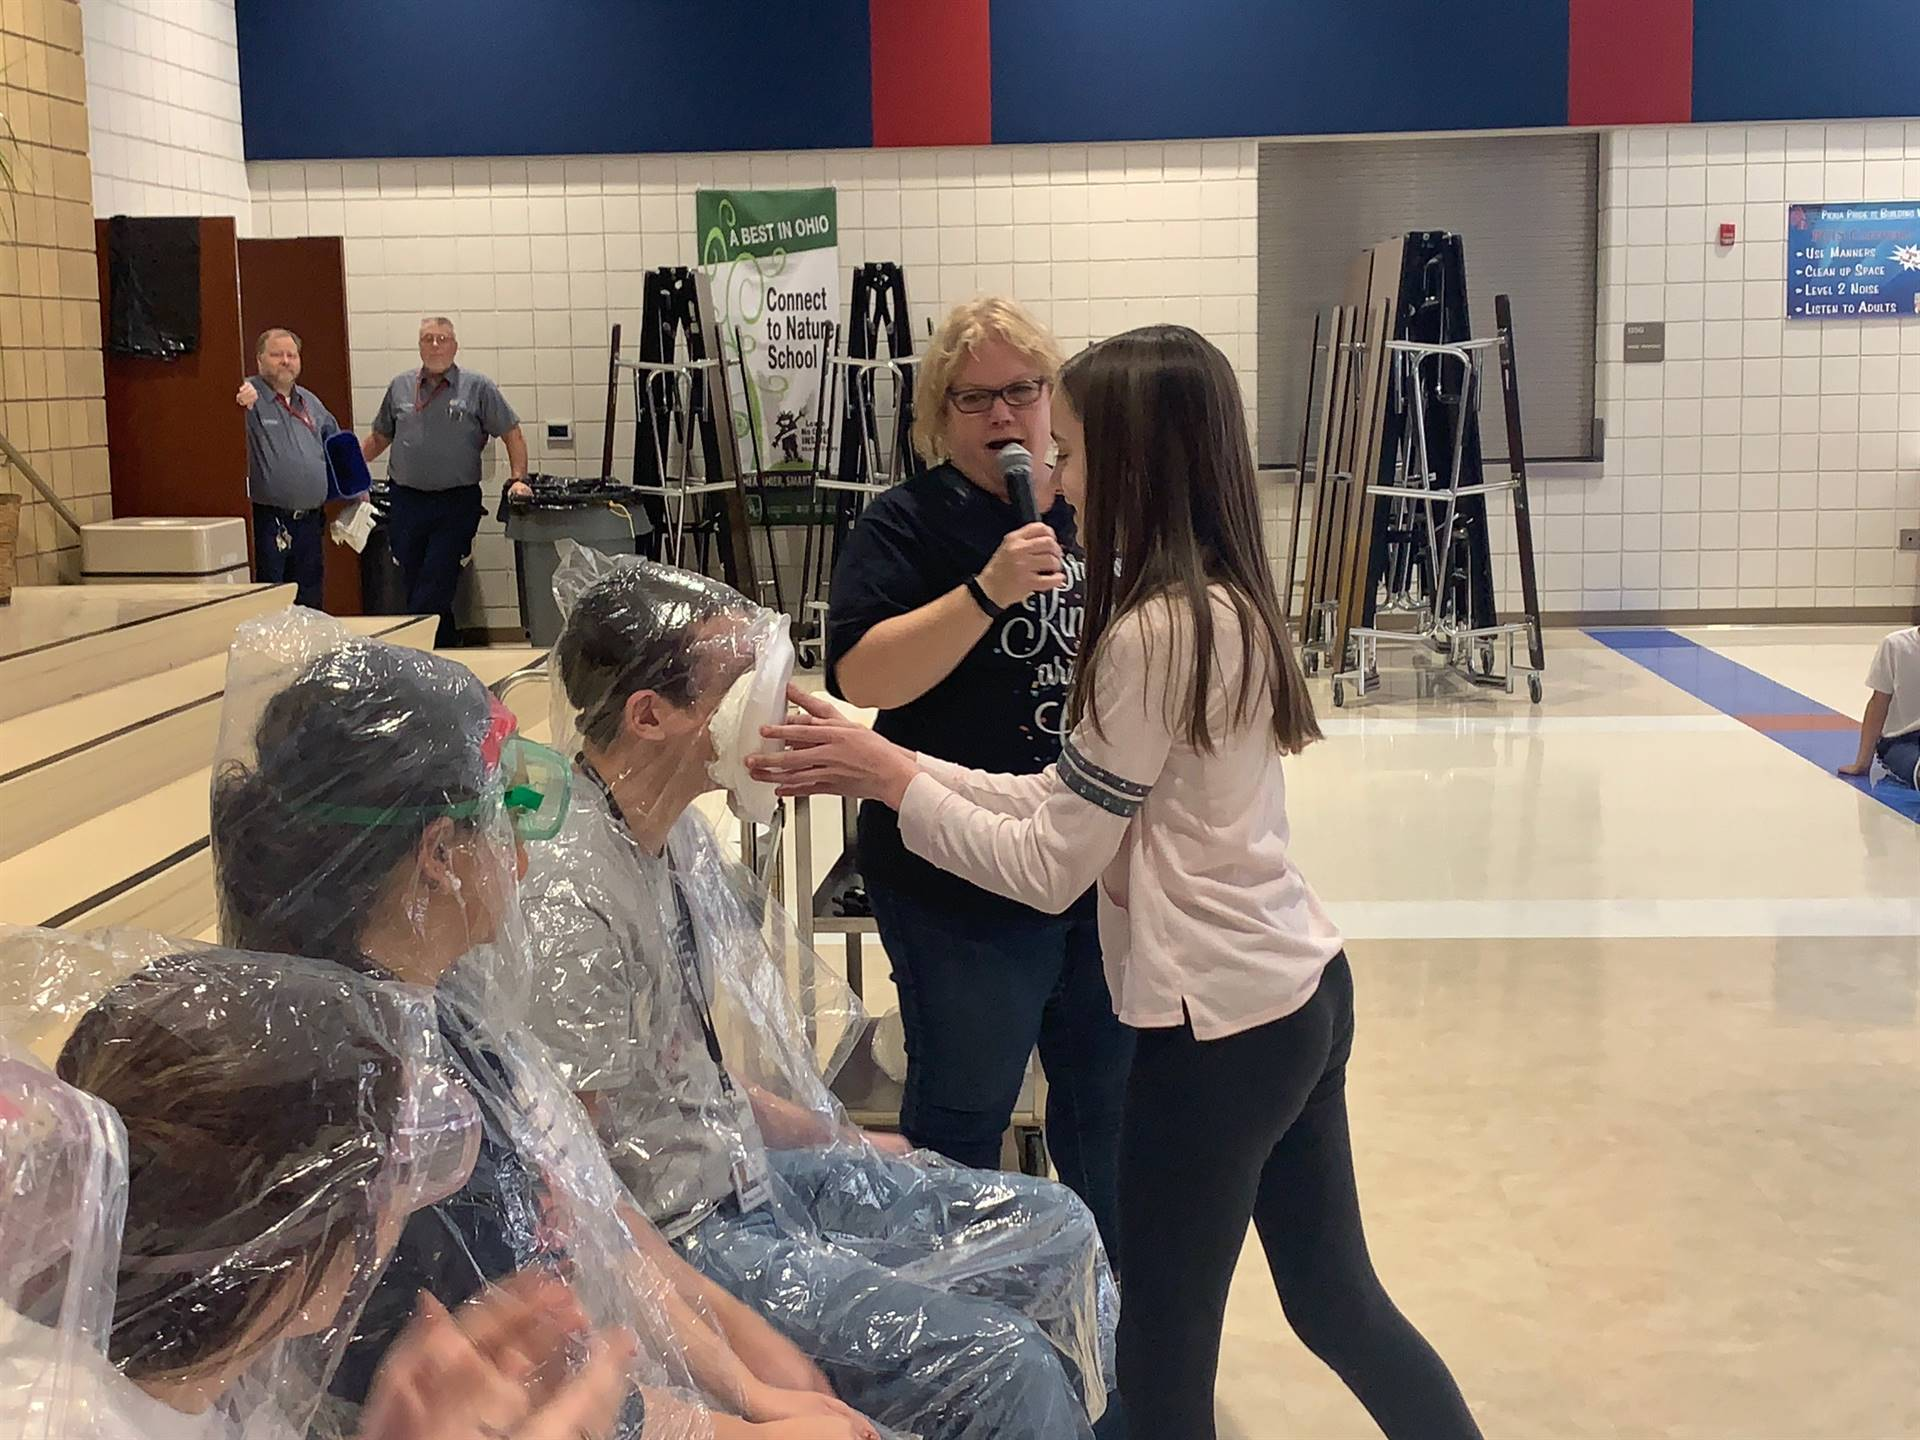 Mr. Baltes gets a pie in the face!